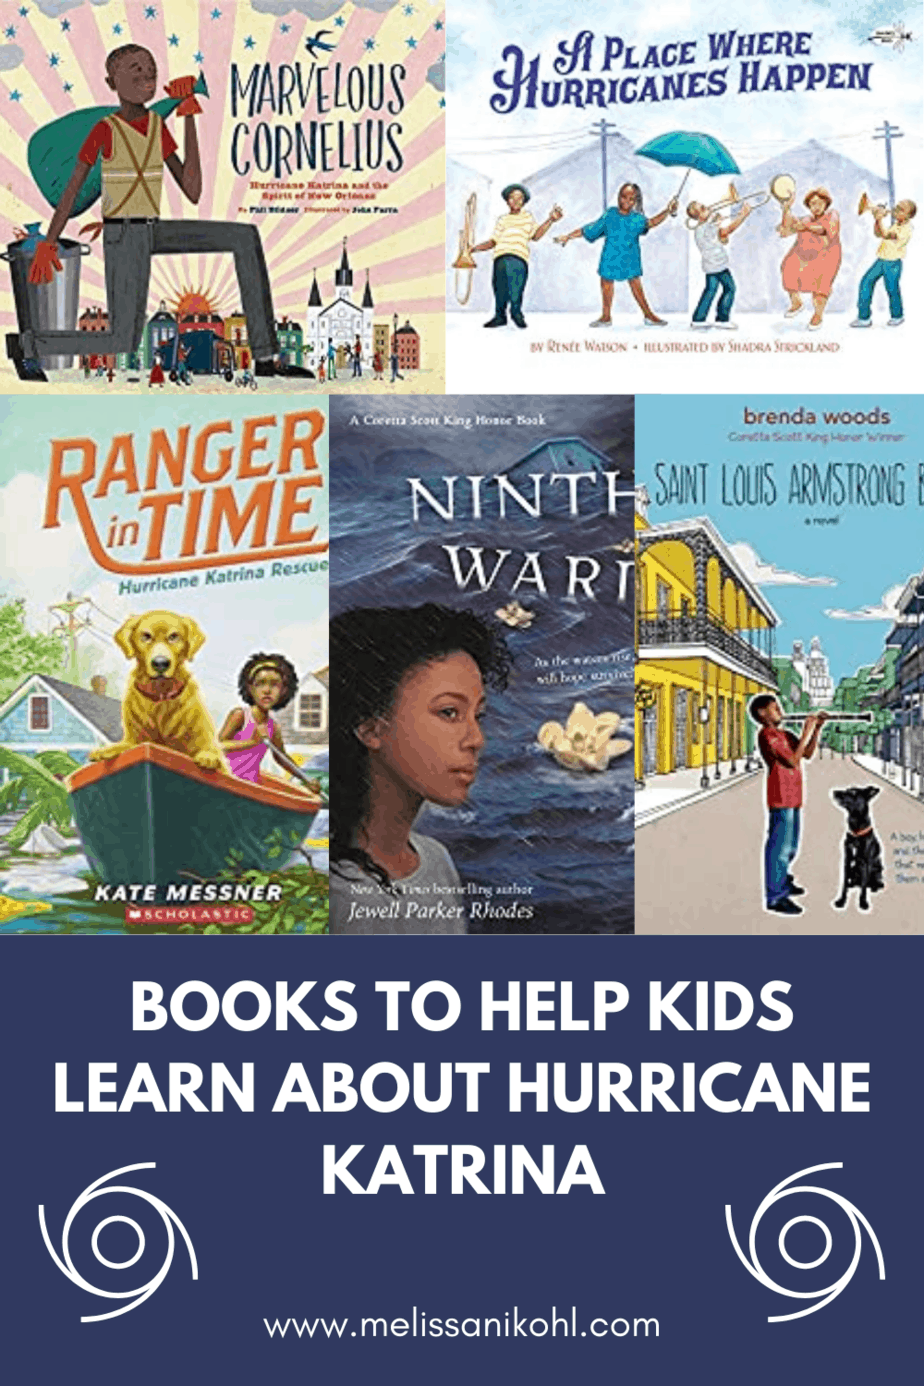 The easiest way to share information about a topic is by reading books. Hurricane Katrina is a natural disaster that all kids should know about. These books about Hurricane Katrina are a great way to encourage discussions and research about this violent storm. #stembooksforkids #hurricanebooks #hurricanekatrinabooksforkids